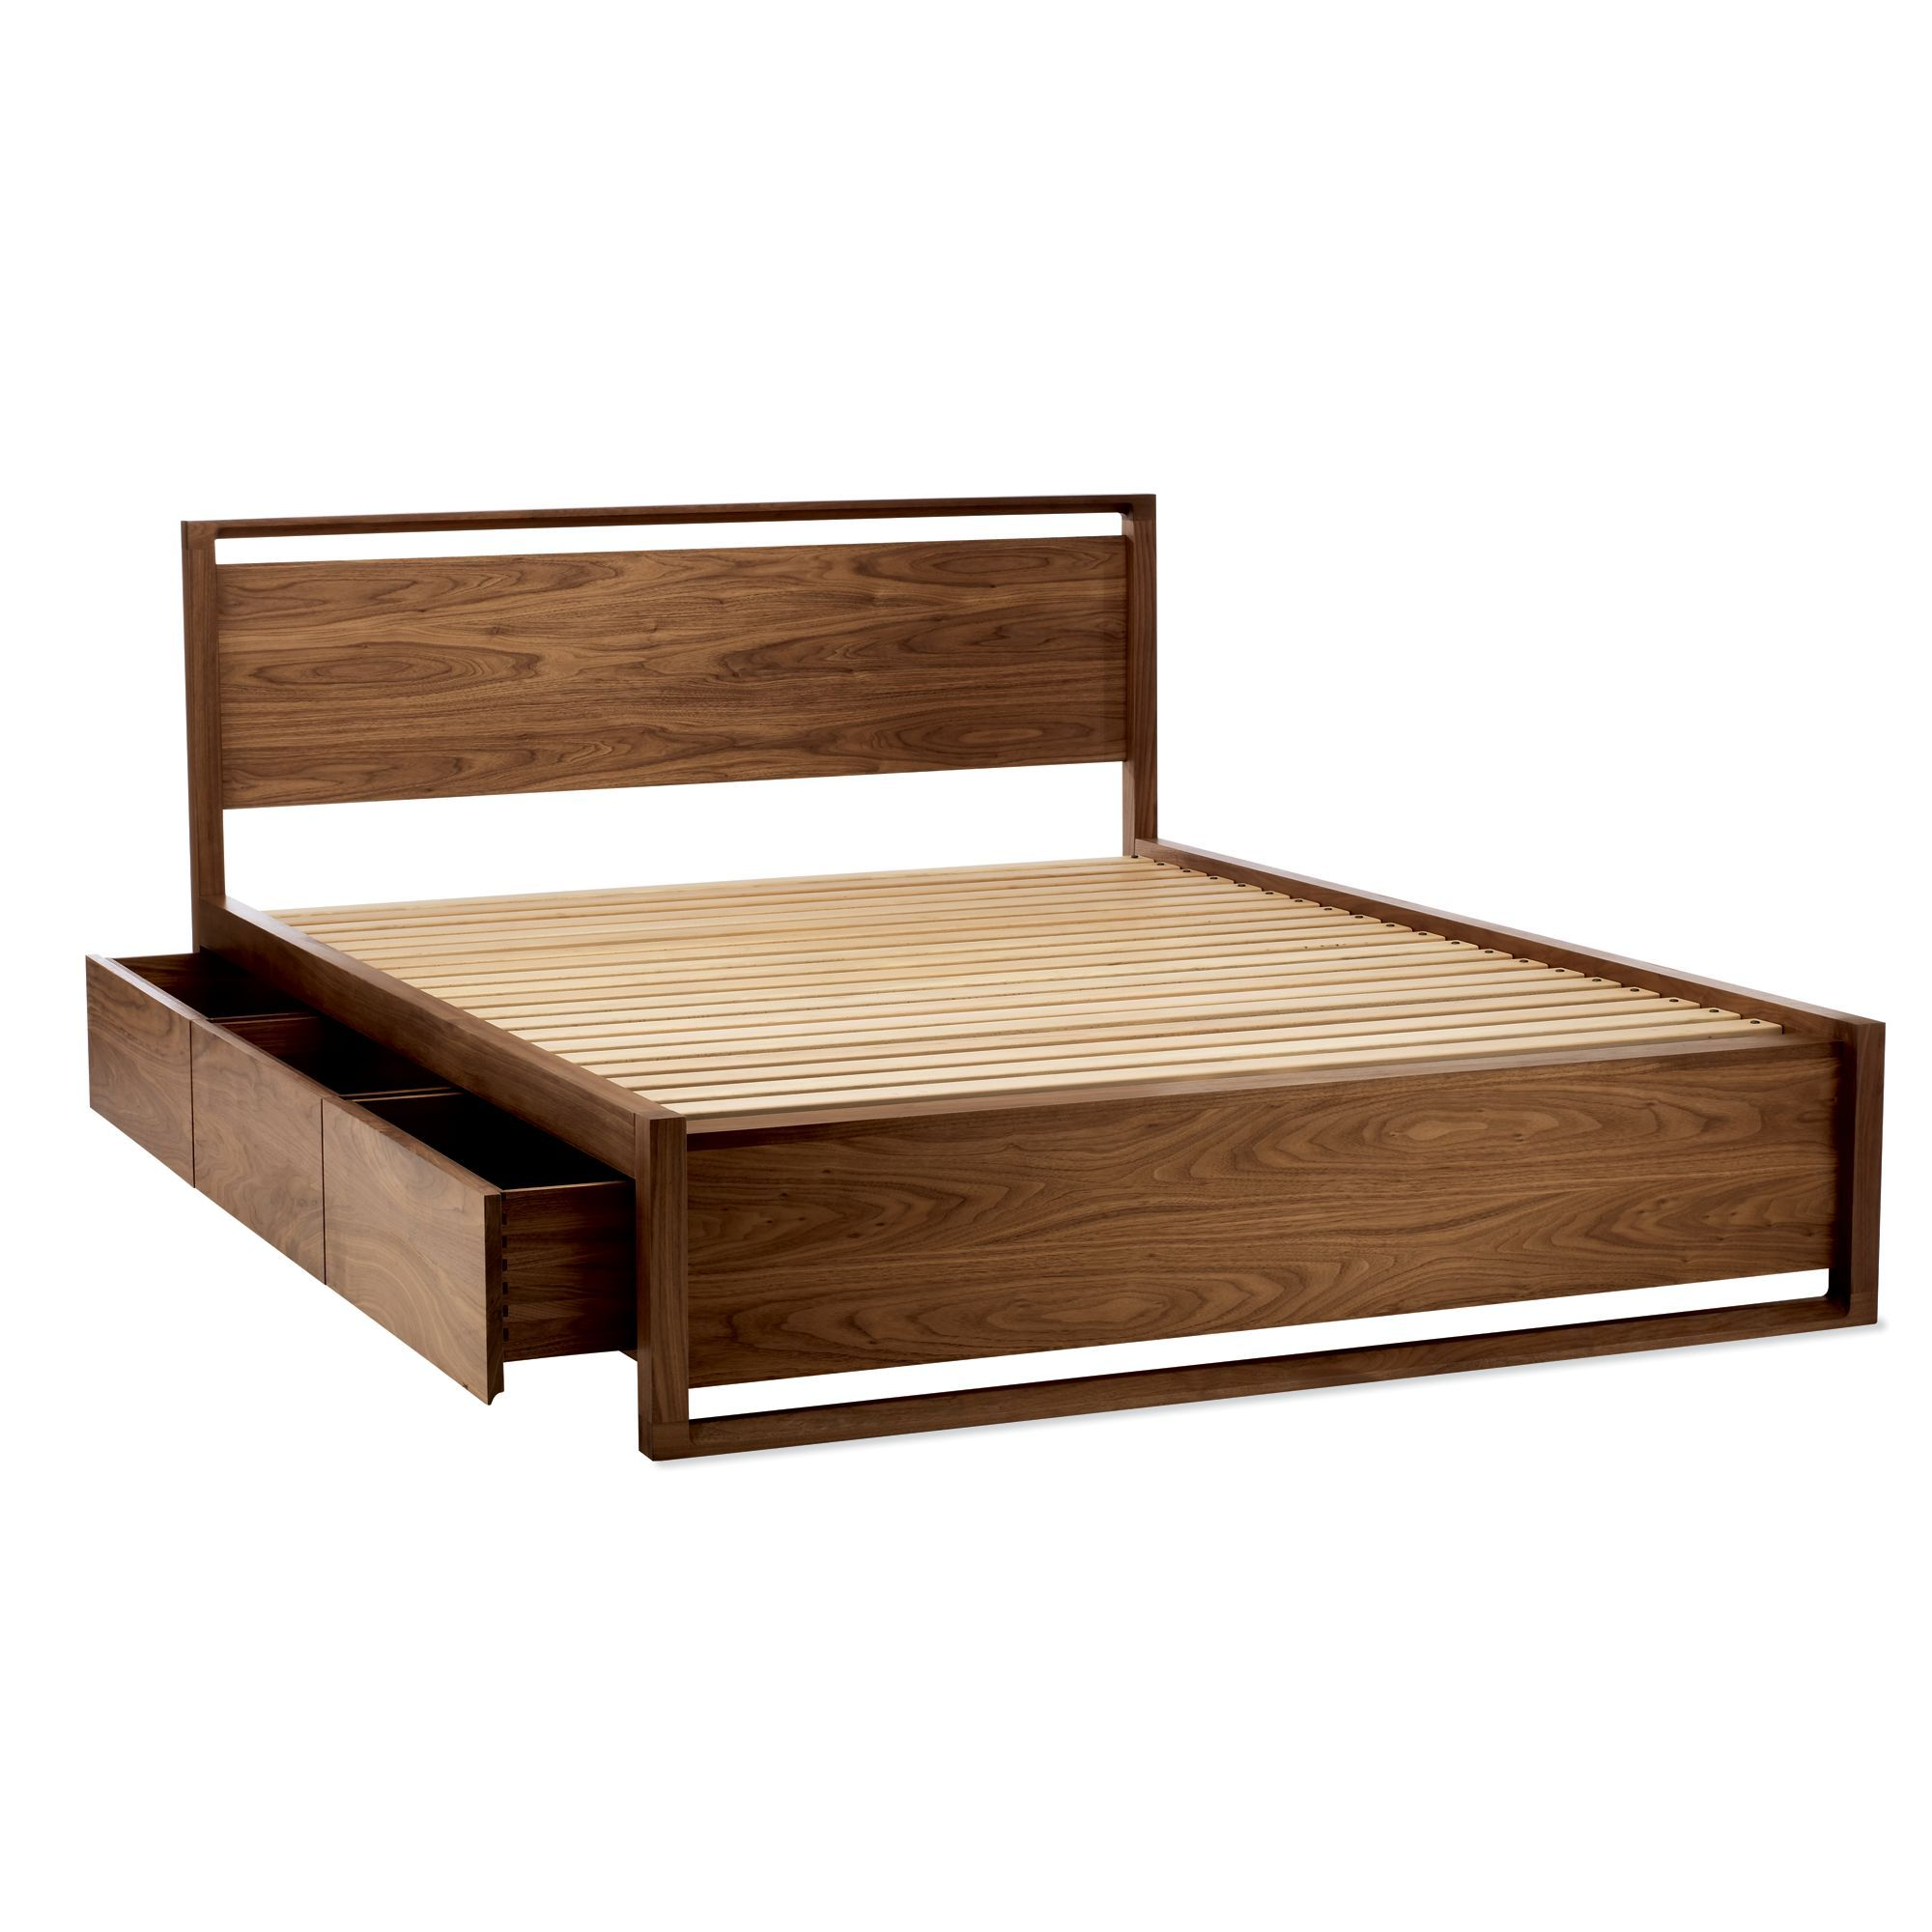 Matera Bed With Storage Bed Frame With Storage Matera Bed